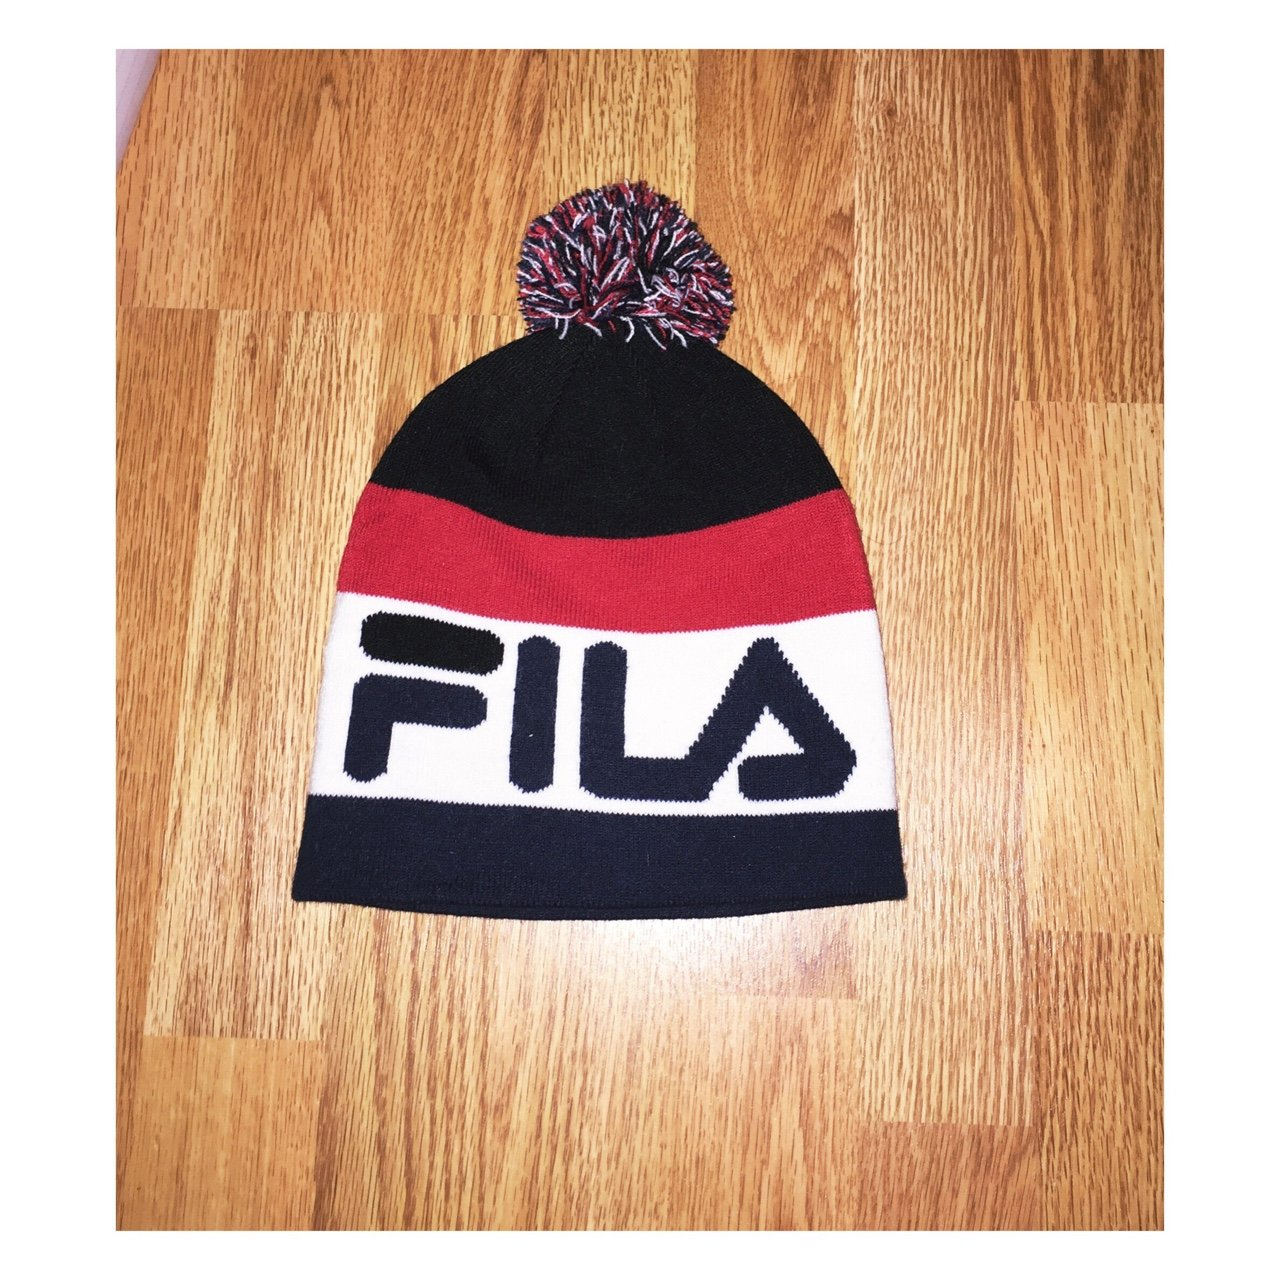 Brand new Fila beanie bobble knitted woolly hat ❄ ❄  fila - Depop 6dc4d70e93f